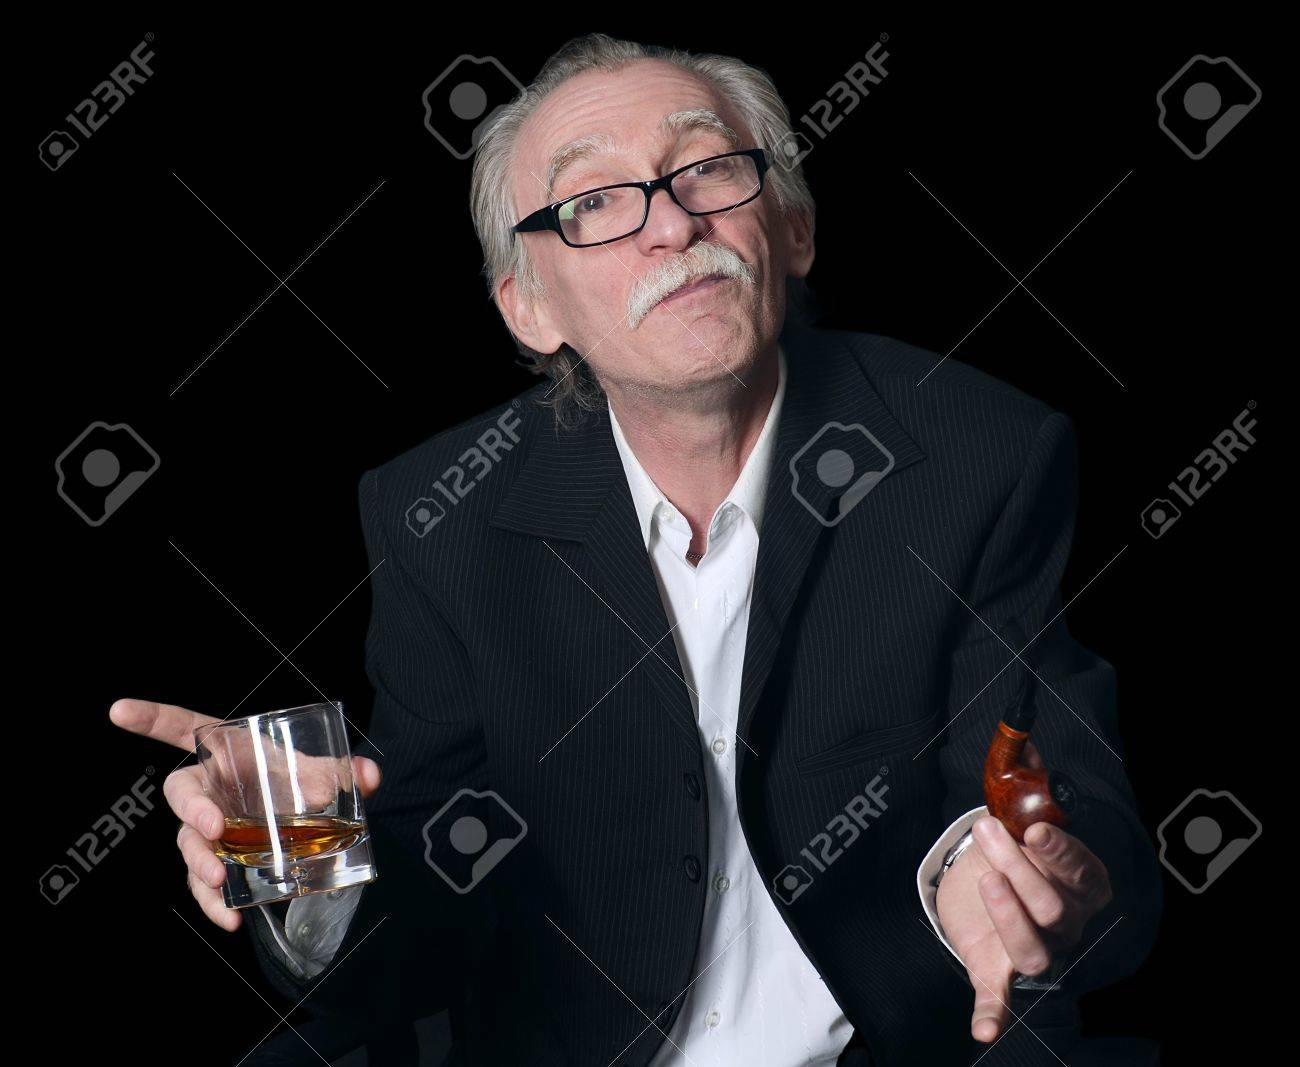 The elderly man with a glass of whisky on a black background Stock Photo - 19262182